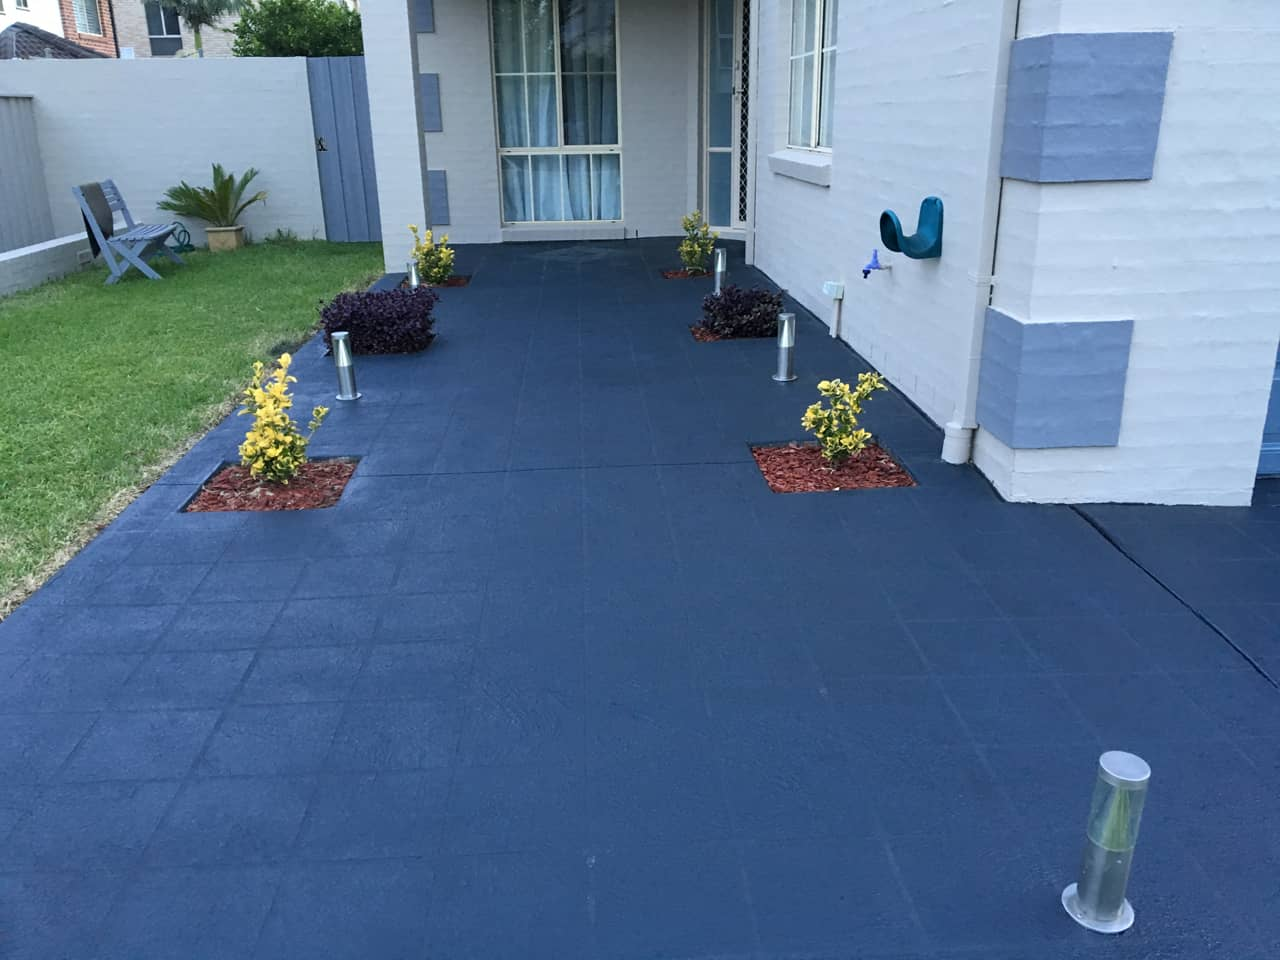 Things To Remember While Painting Your Driveway